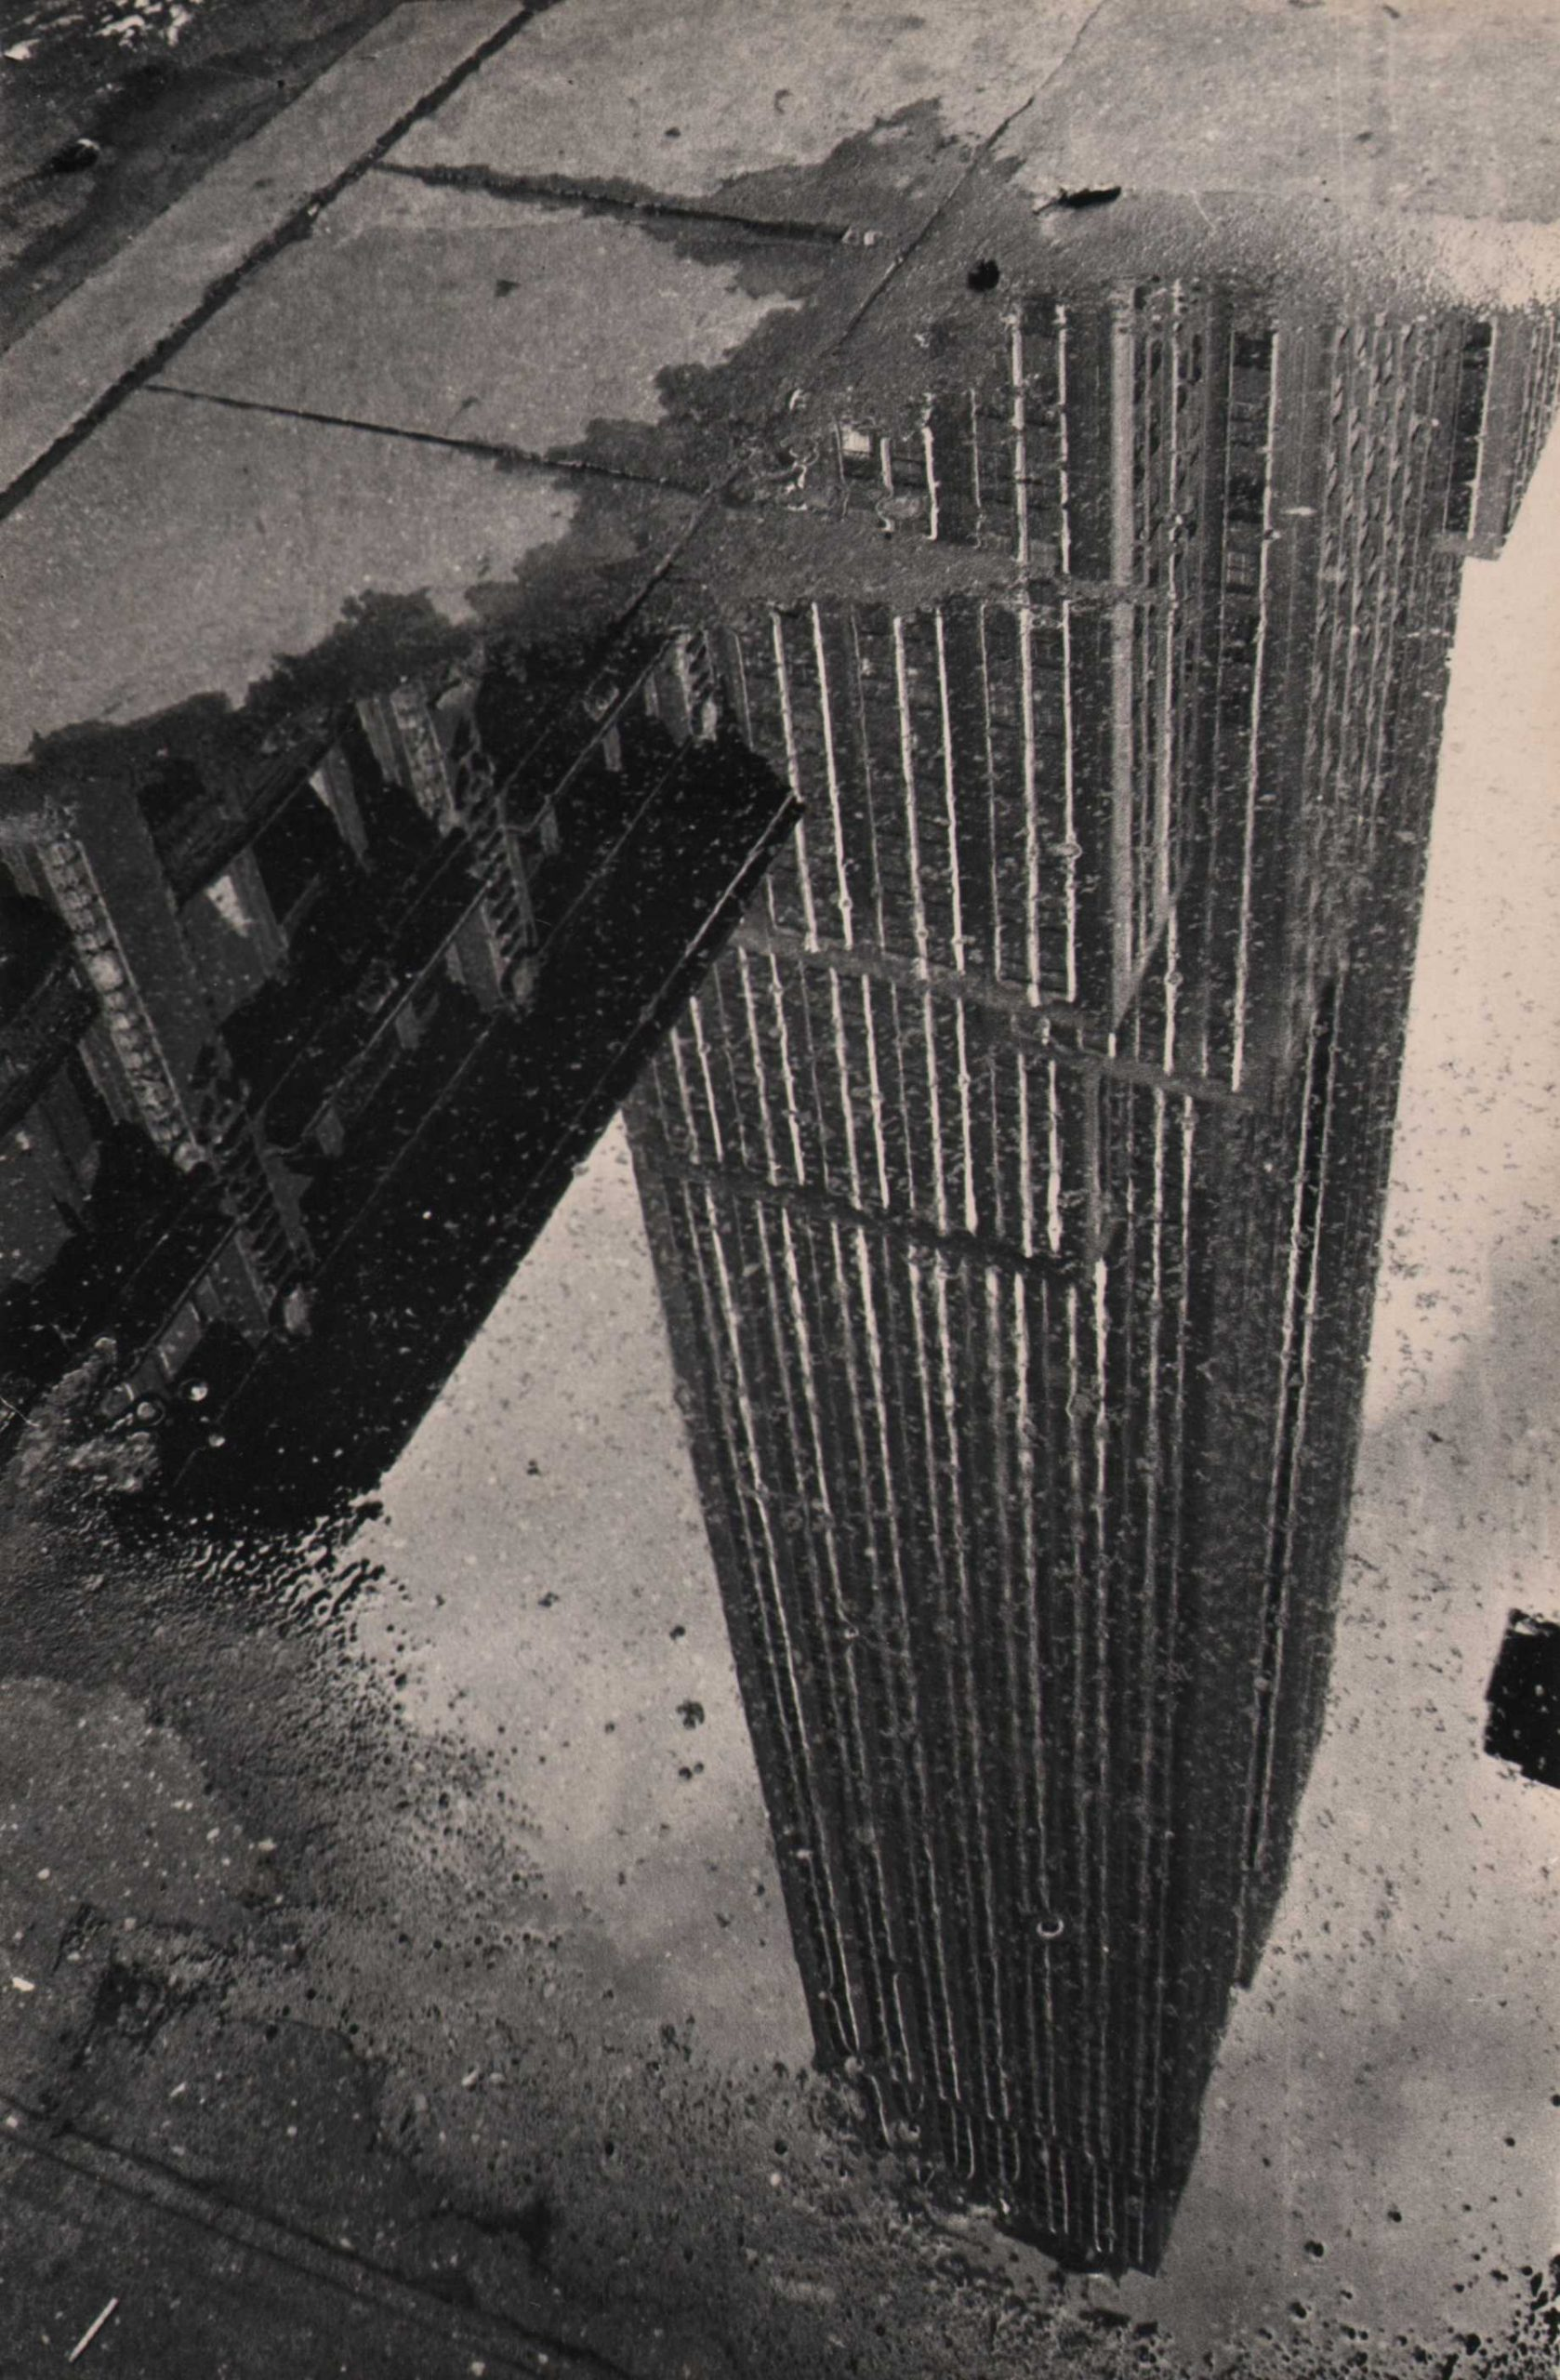 Fritz Neugass, Reflections- Empire State in a Rain Puddle, c. 1948